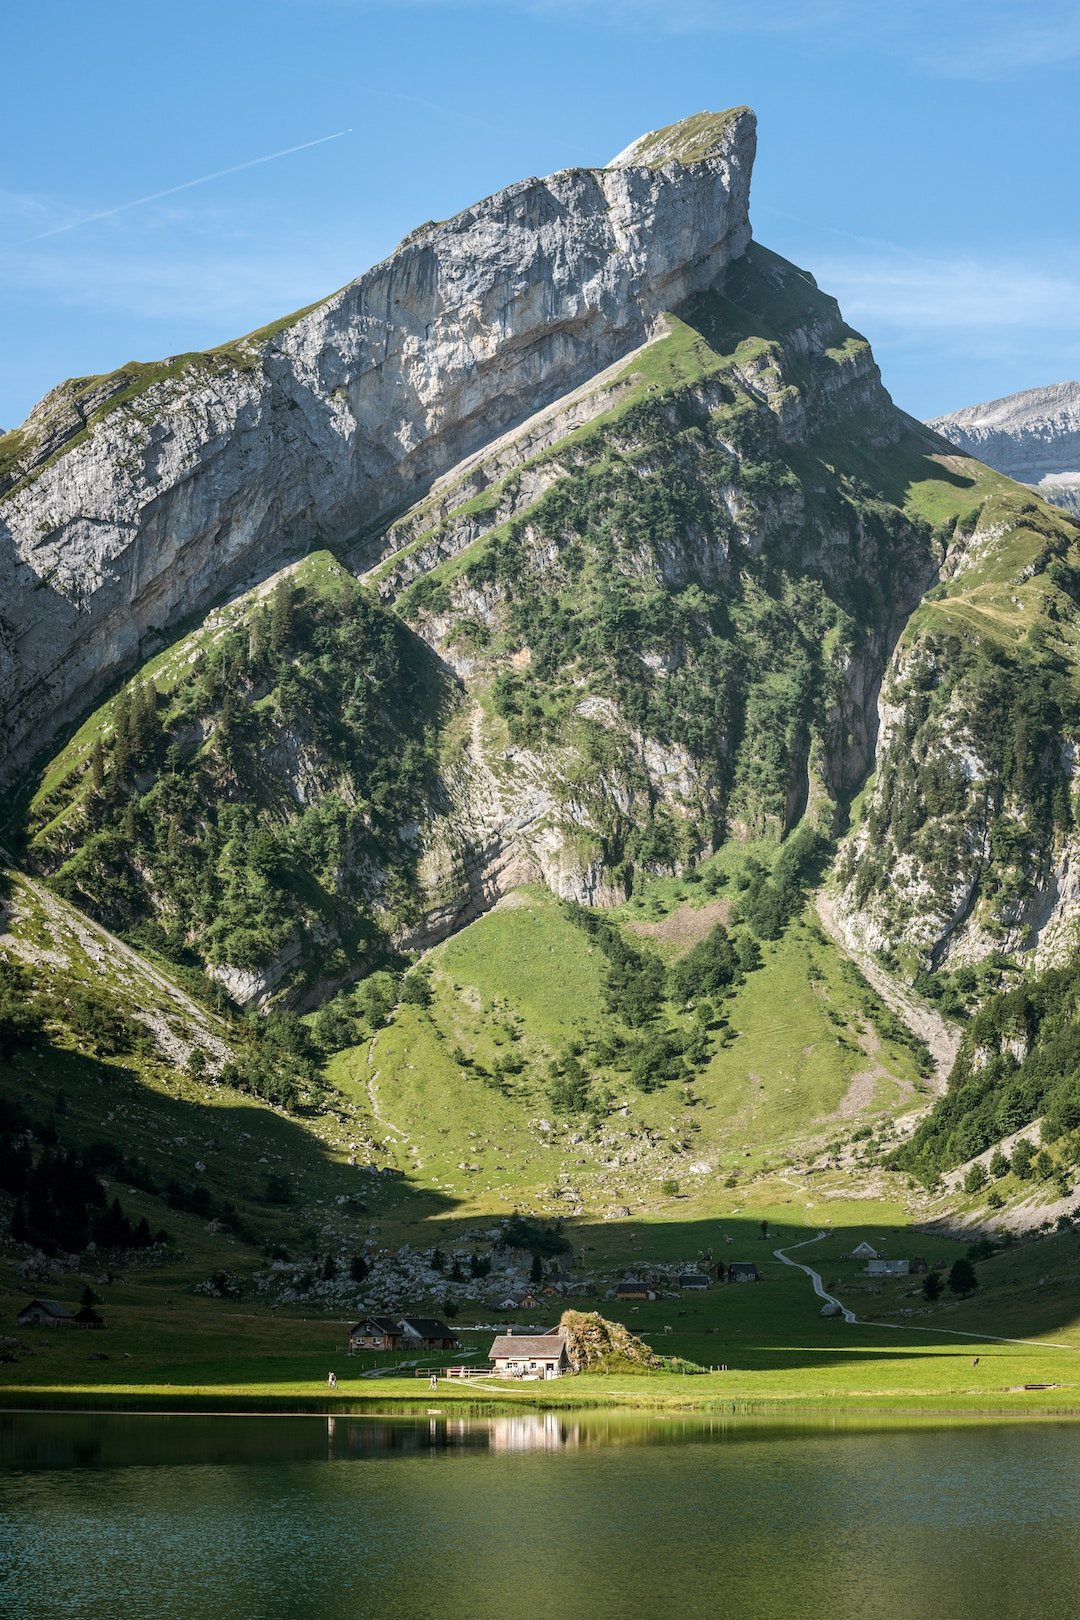 PhotoFly Travel Club | Switzerland Group Tour | PhotoFly Travel Club